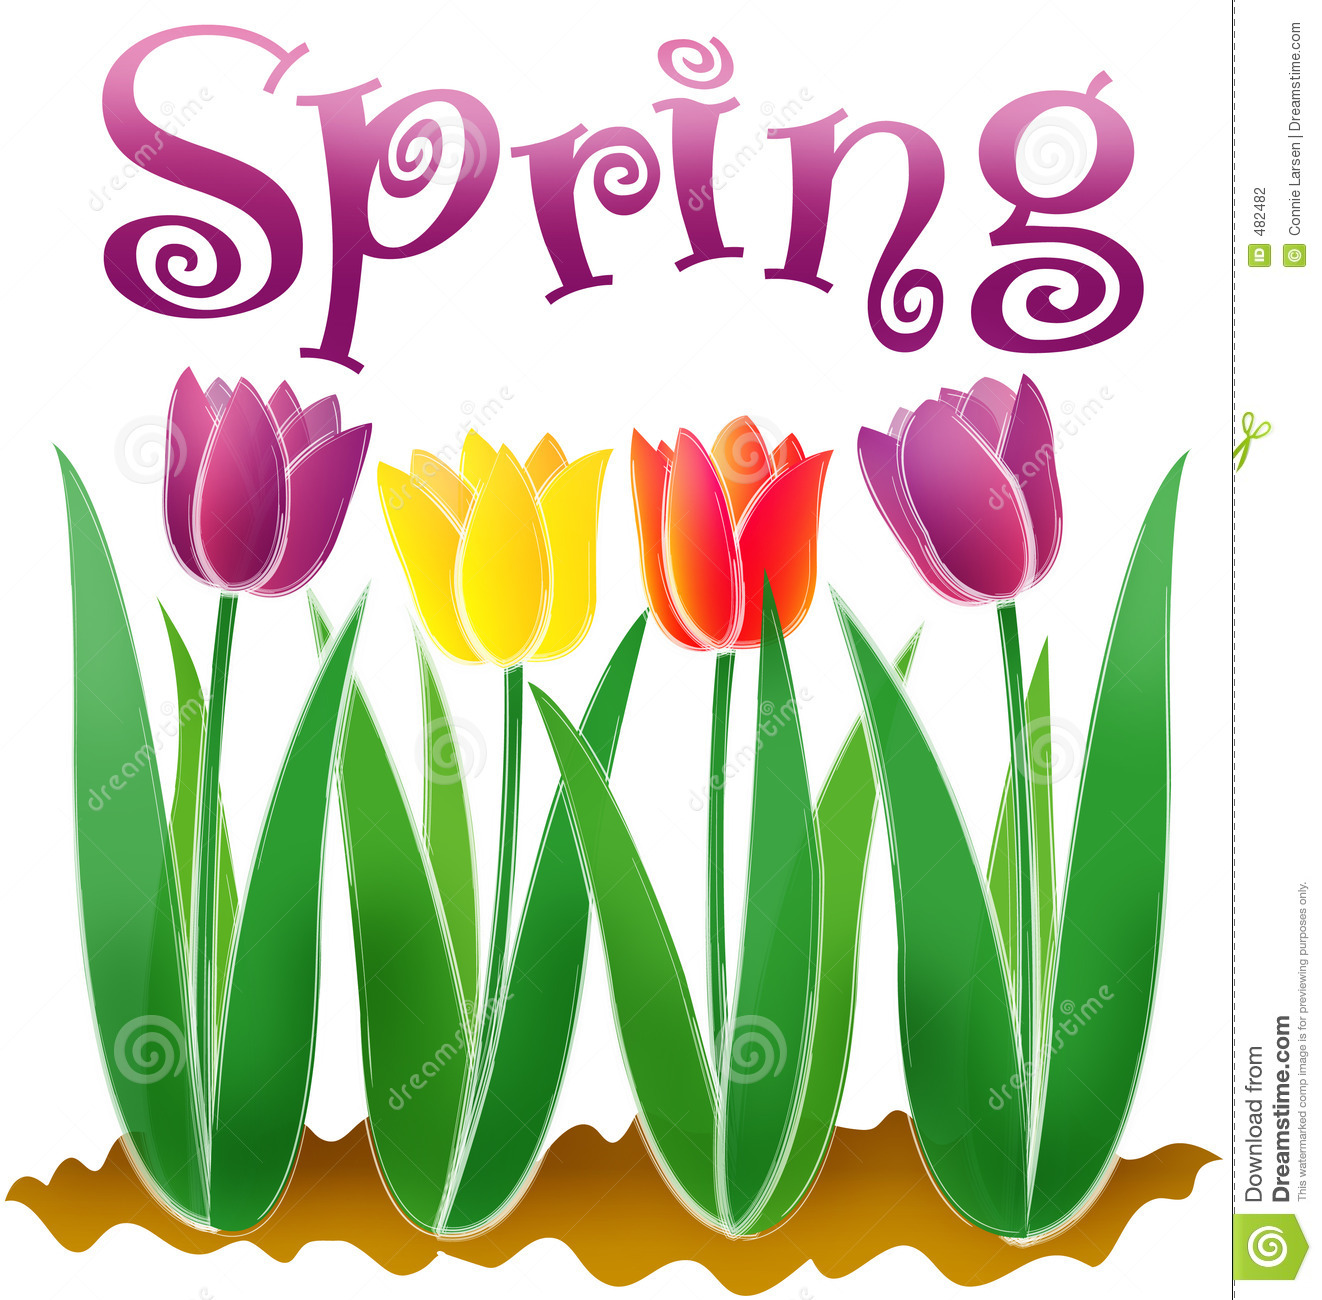 Spring Season Clipart Images .